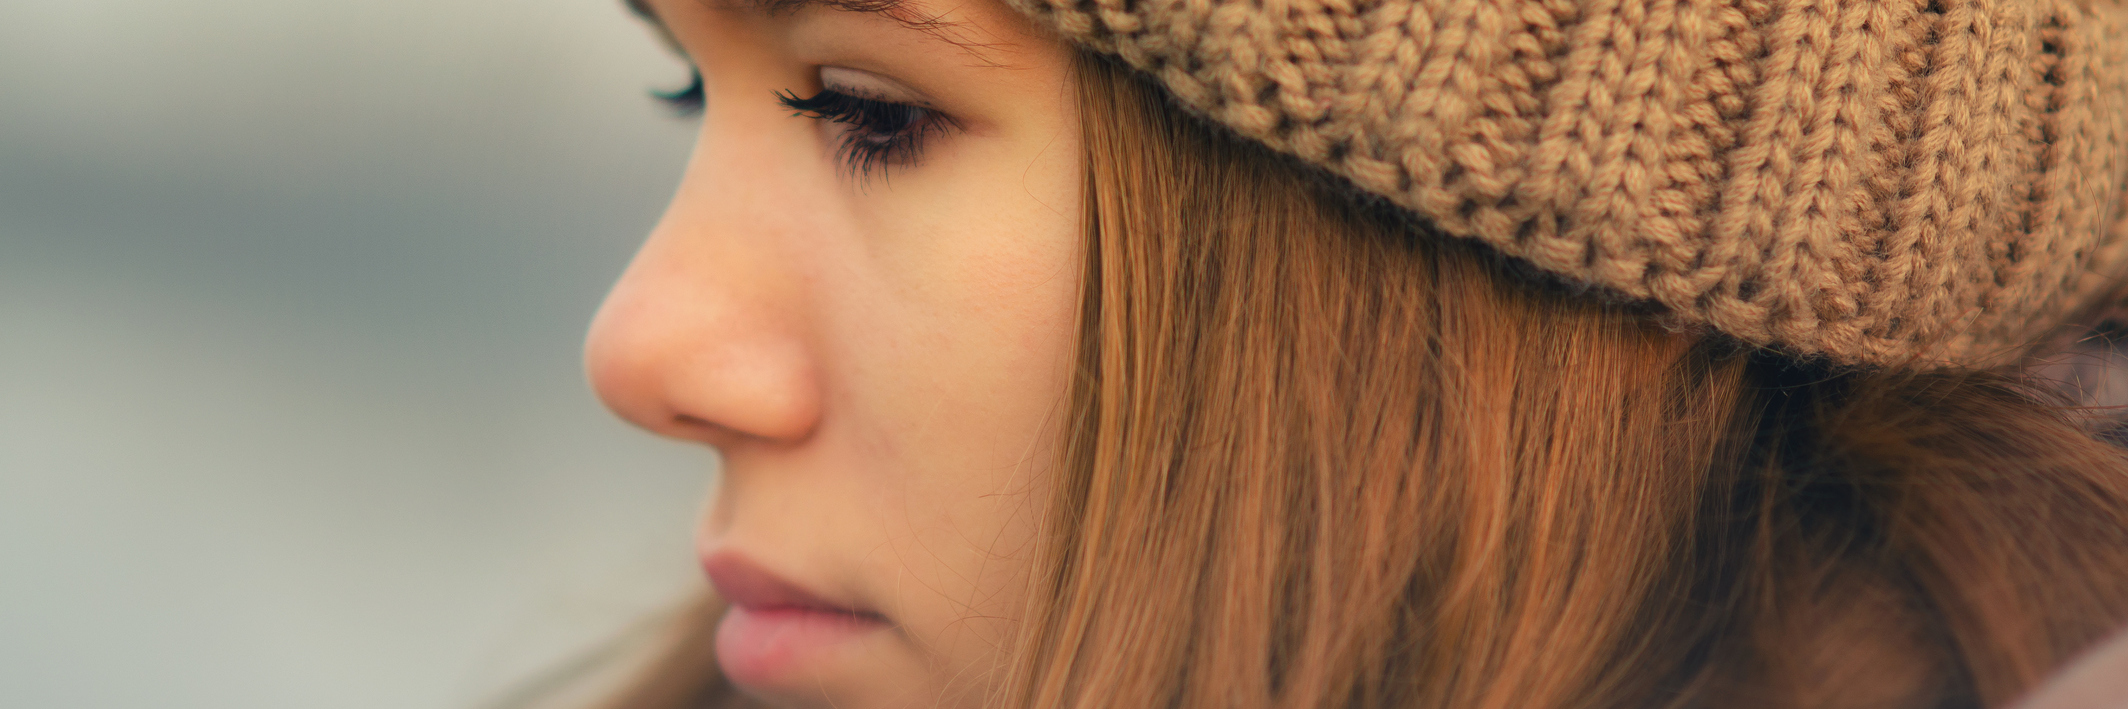 young woman wearing a hat looking sad